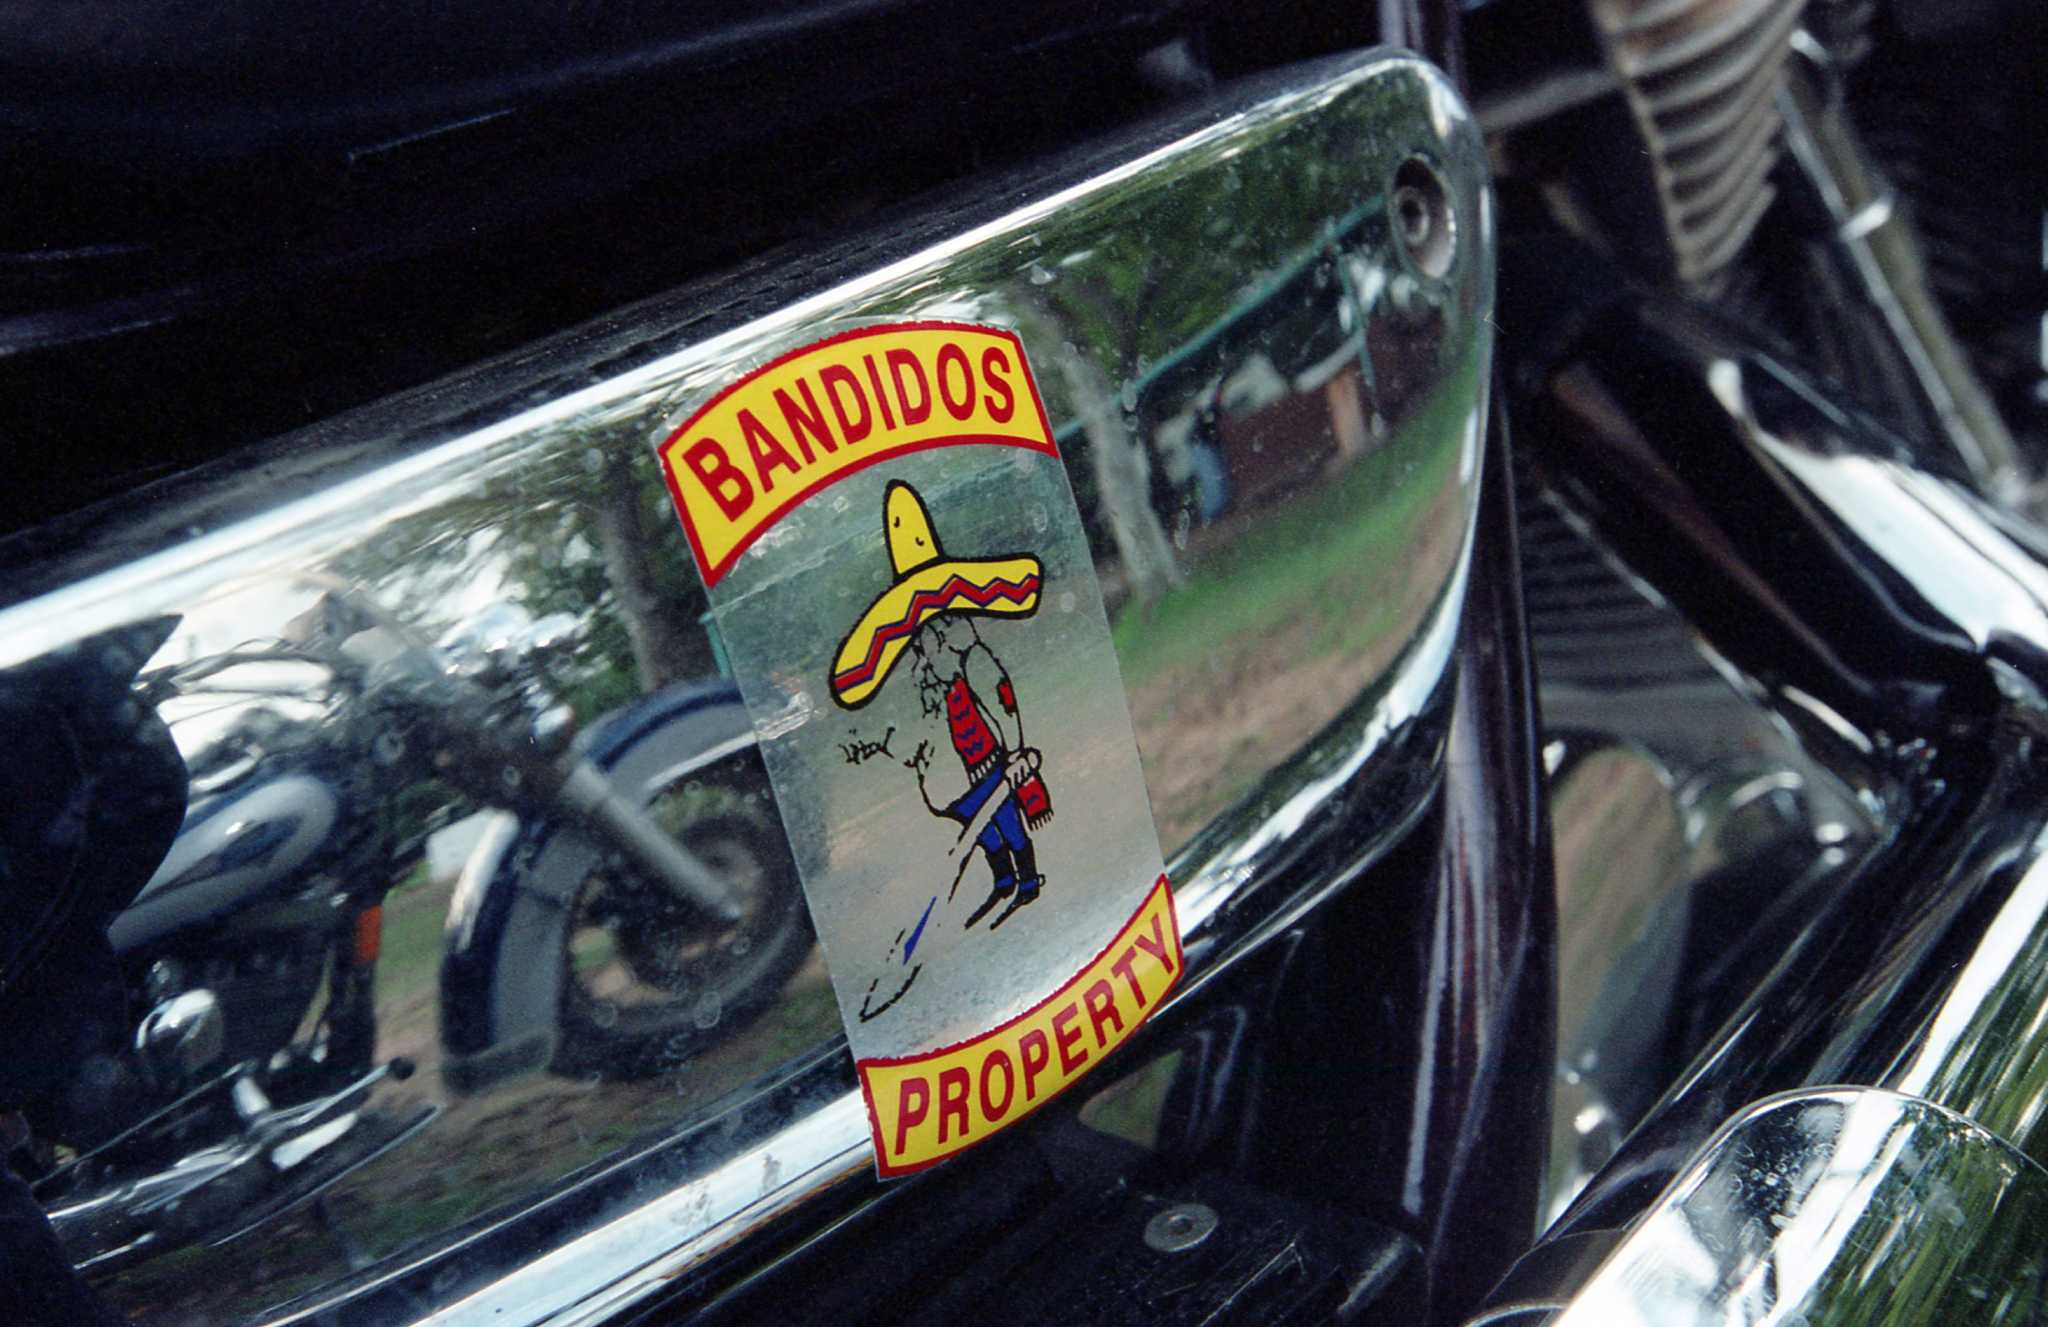 Bandidos claim Waco police spreading lies - Houston Chronicle